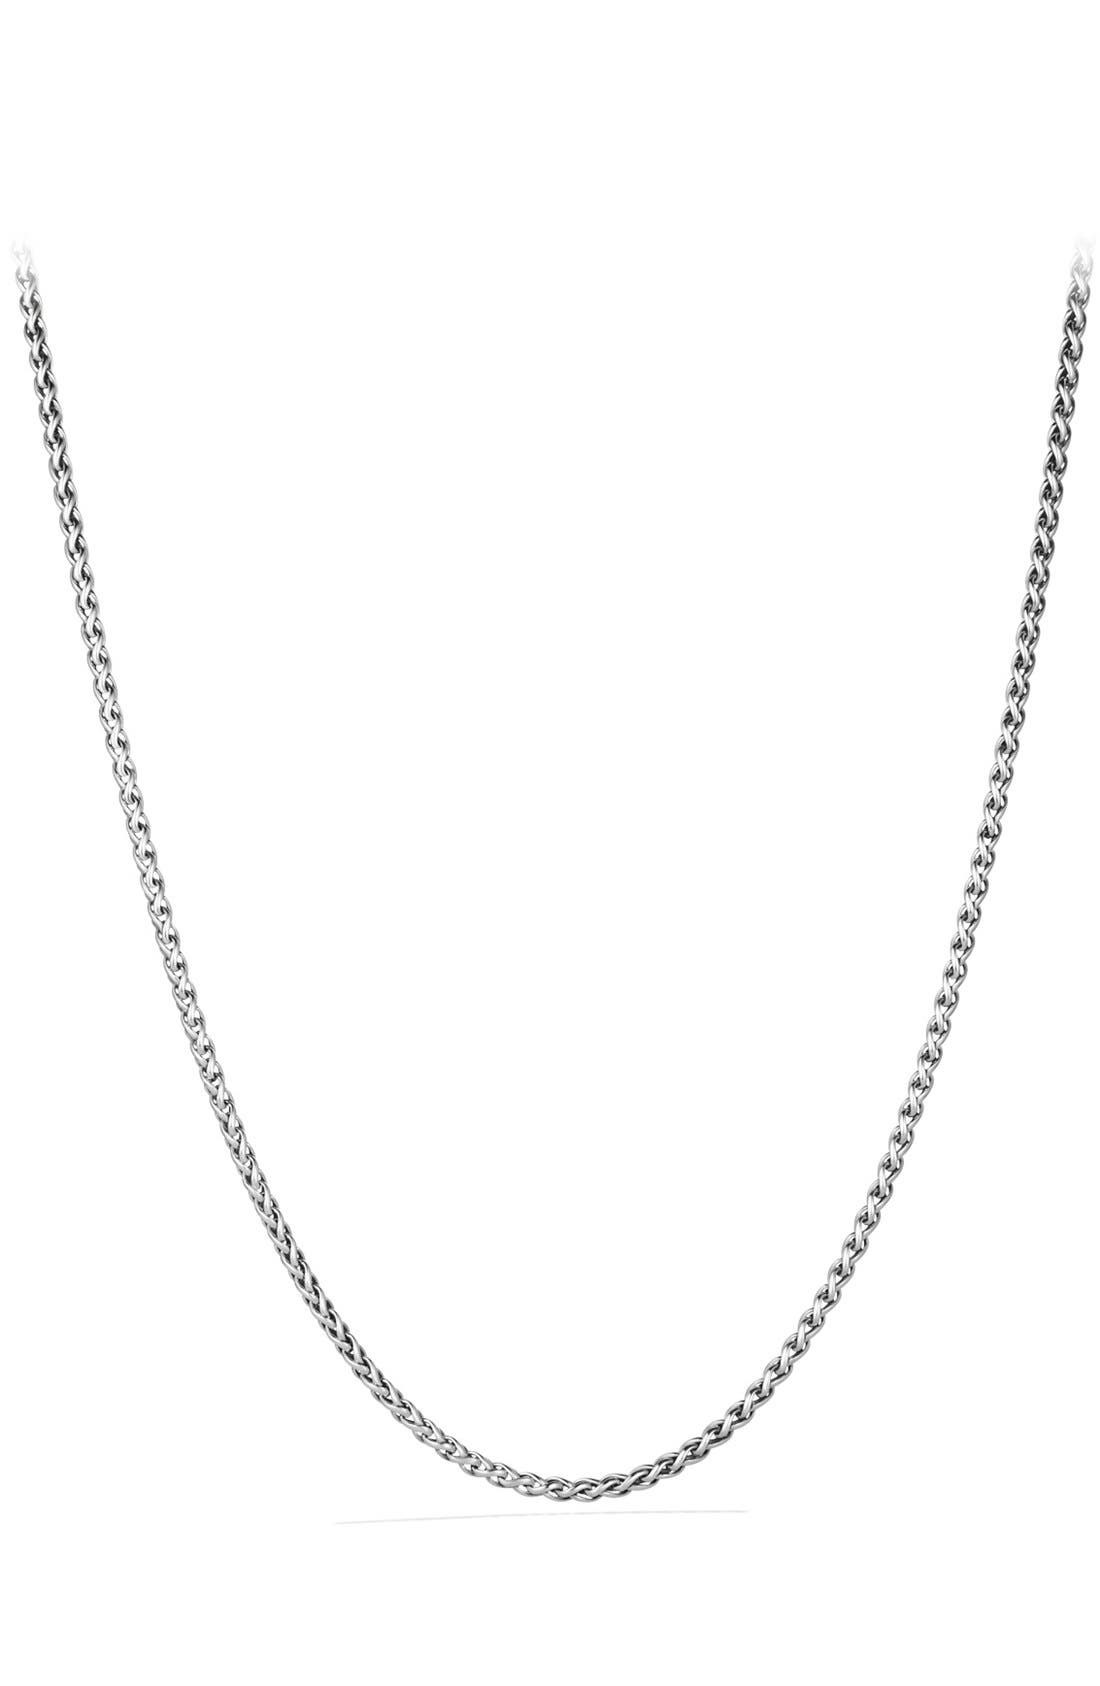 Alternate Image 1 Selected - David Yurman 'Chain' Small Wheat Chain Necklace